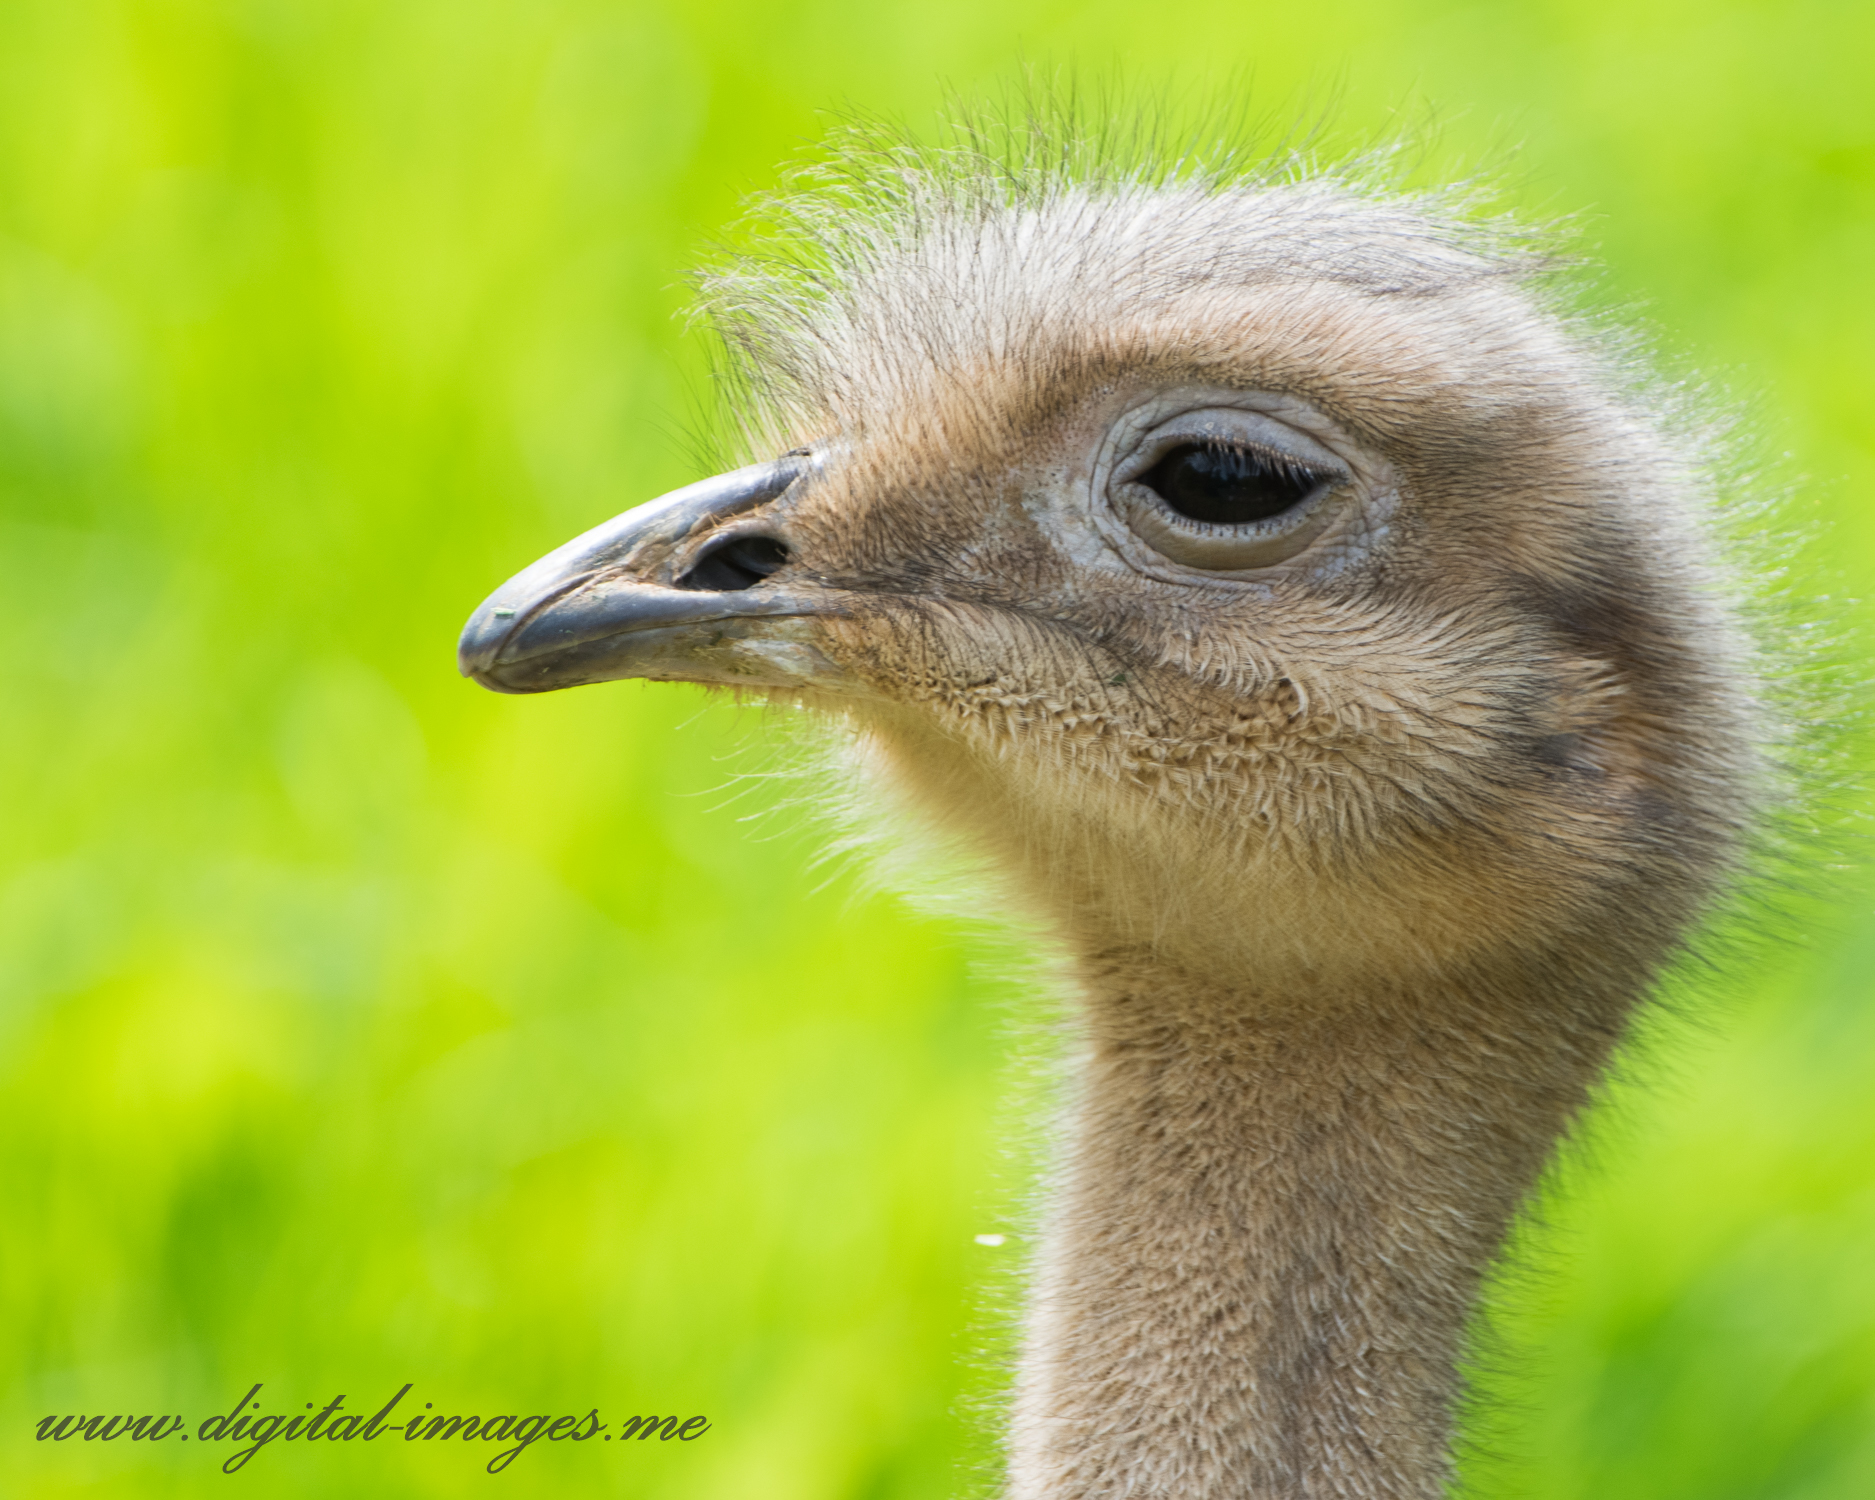 Portraits of an Imperious Rhea